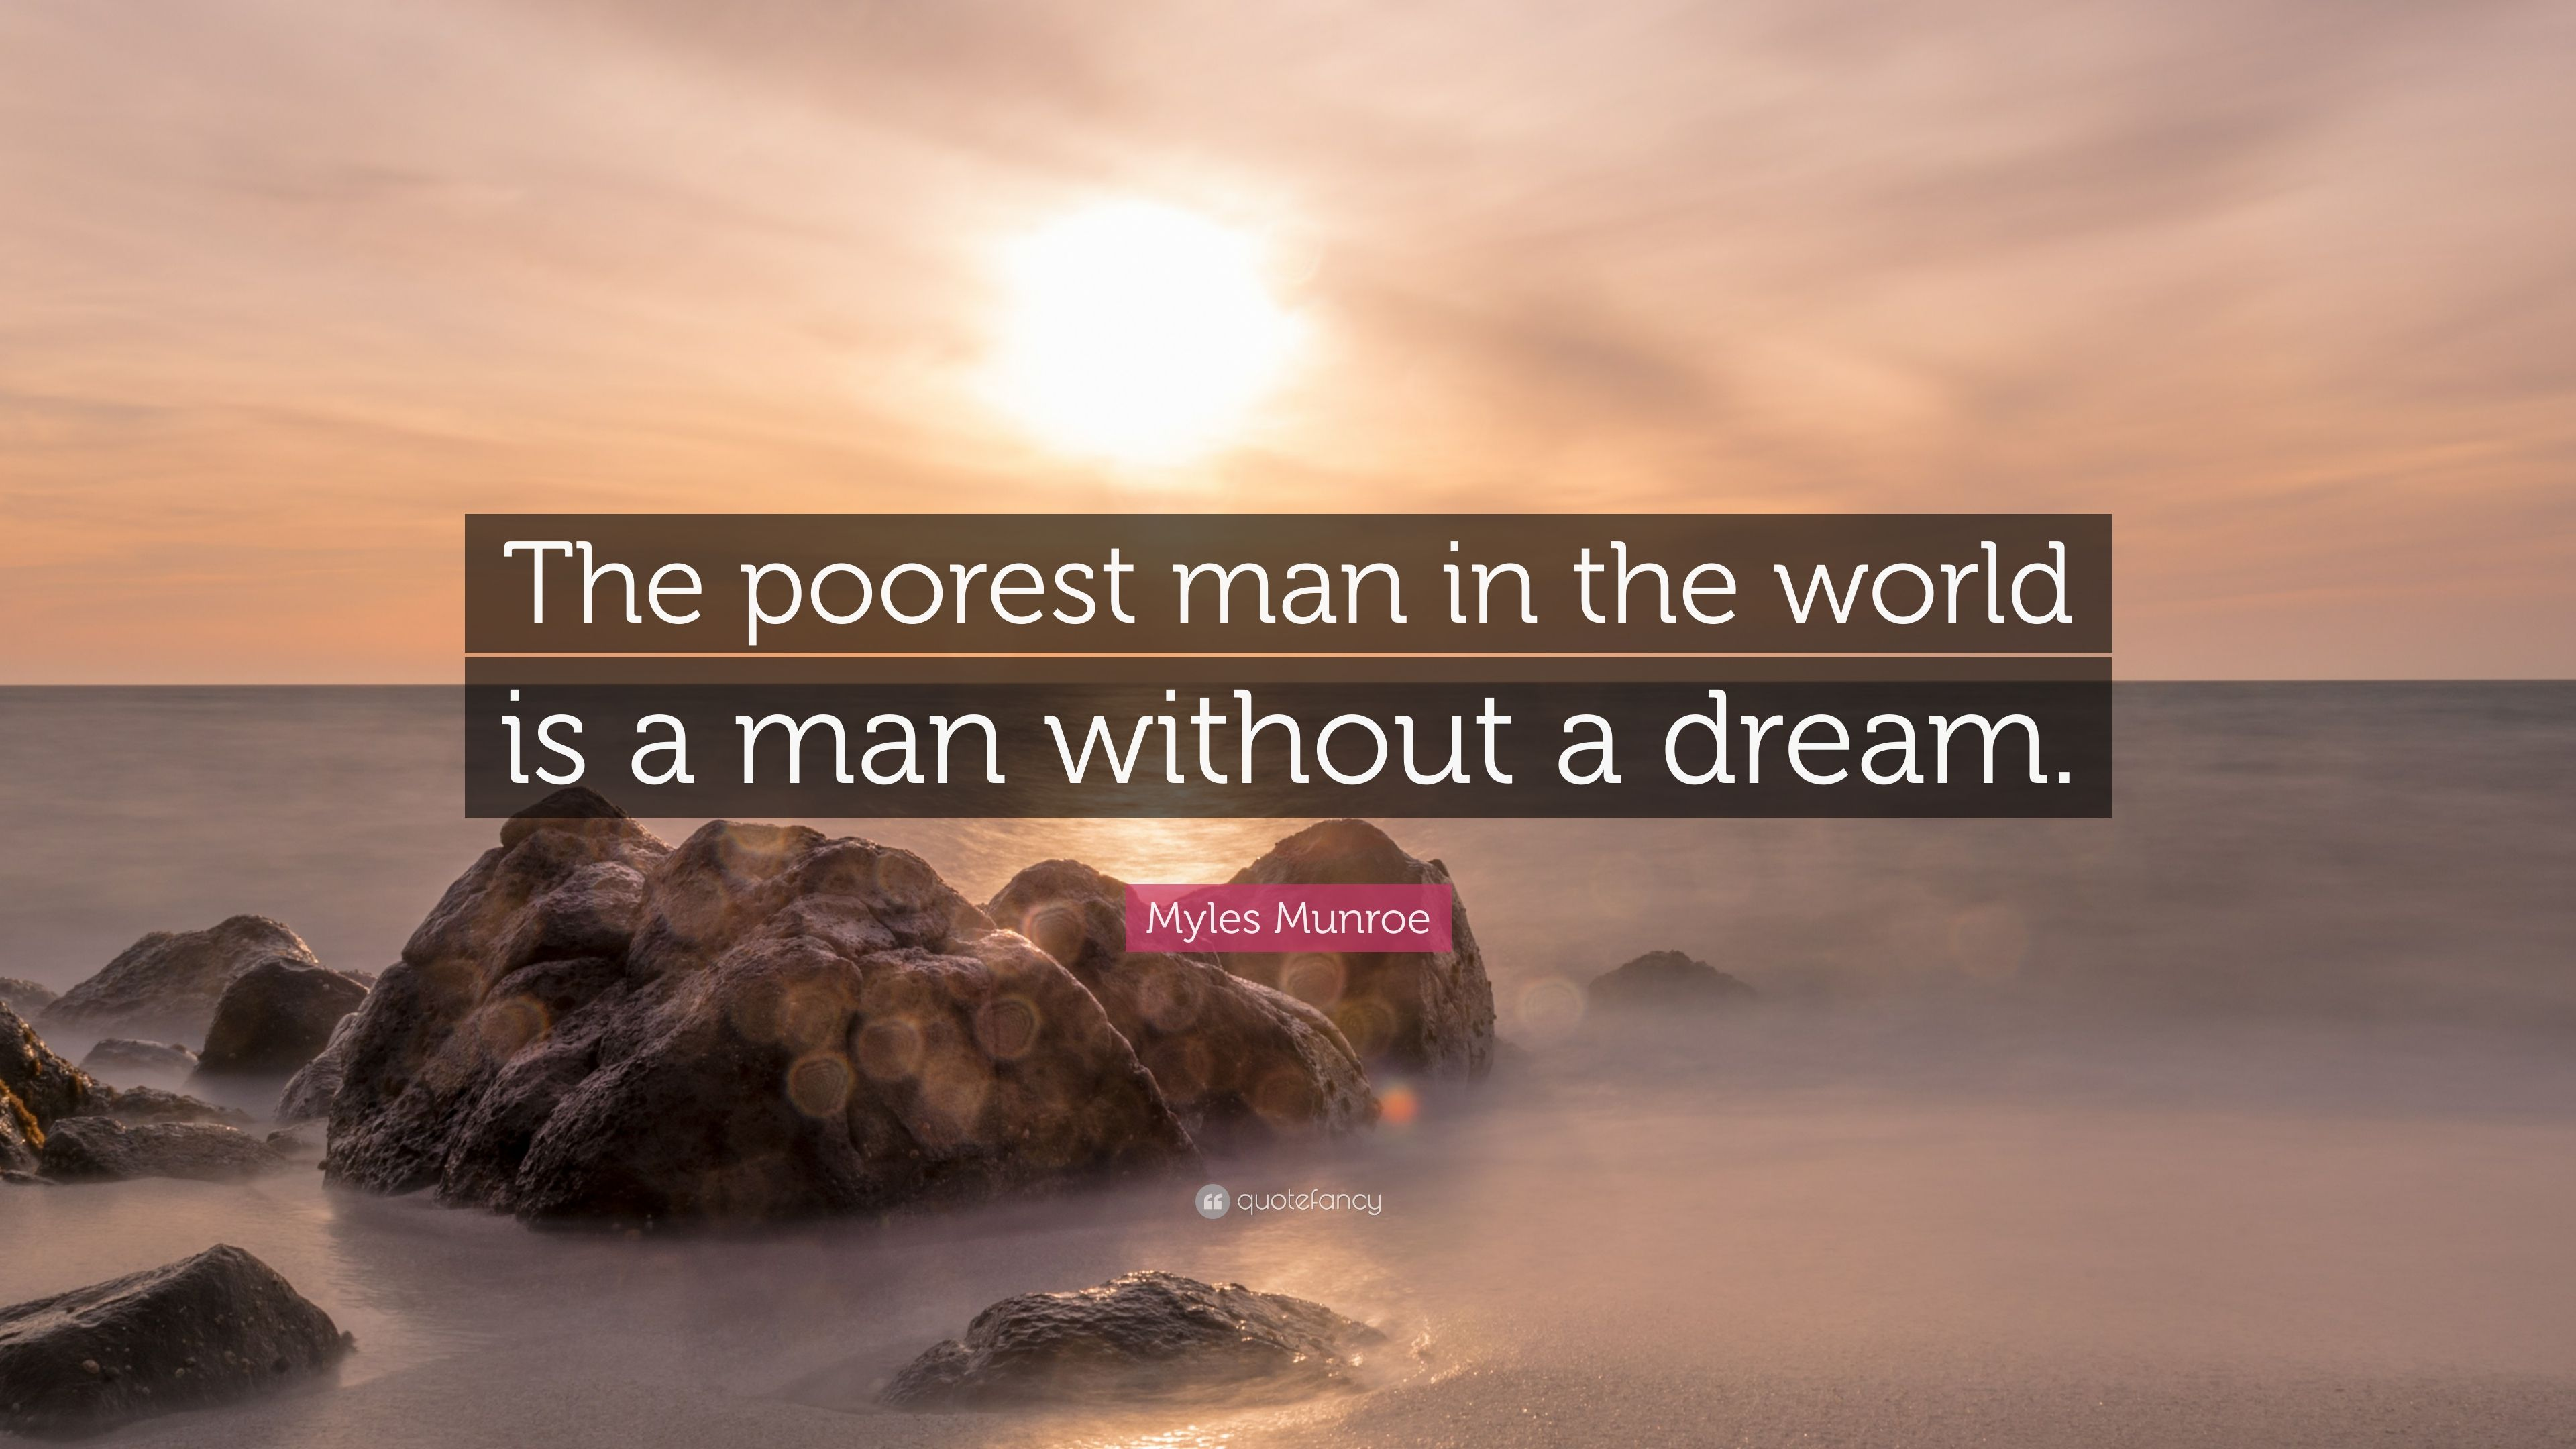 Myles Munroe Quote The Poorest Man In The World Is A Man Without - Who's the poorest person in the world